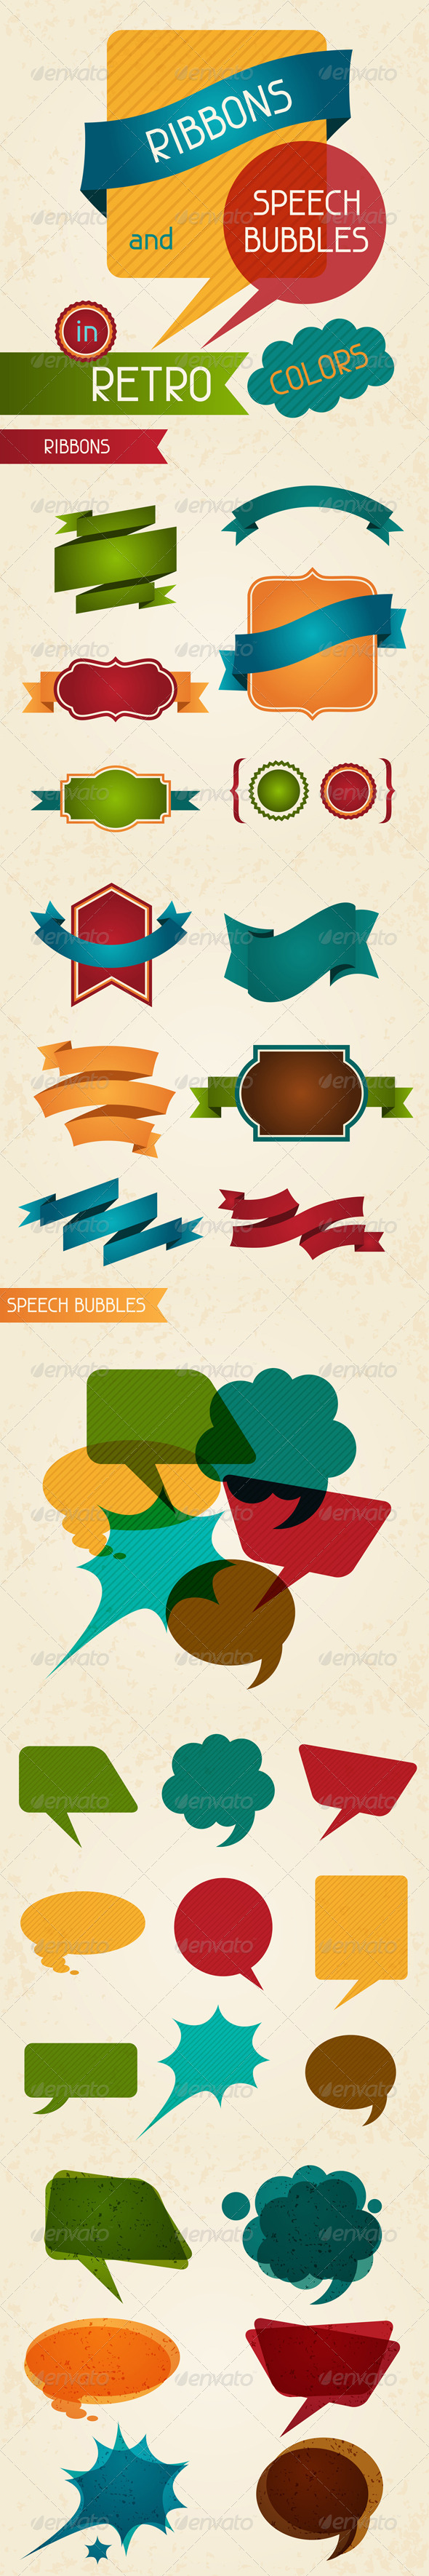 Ribbons and speech bubbles in retro colors. - Retro Technology